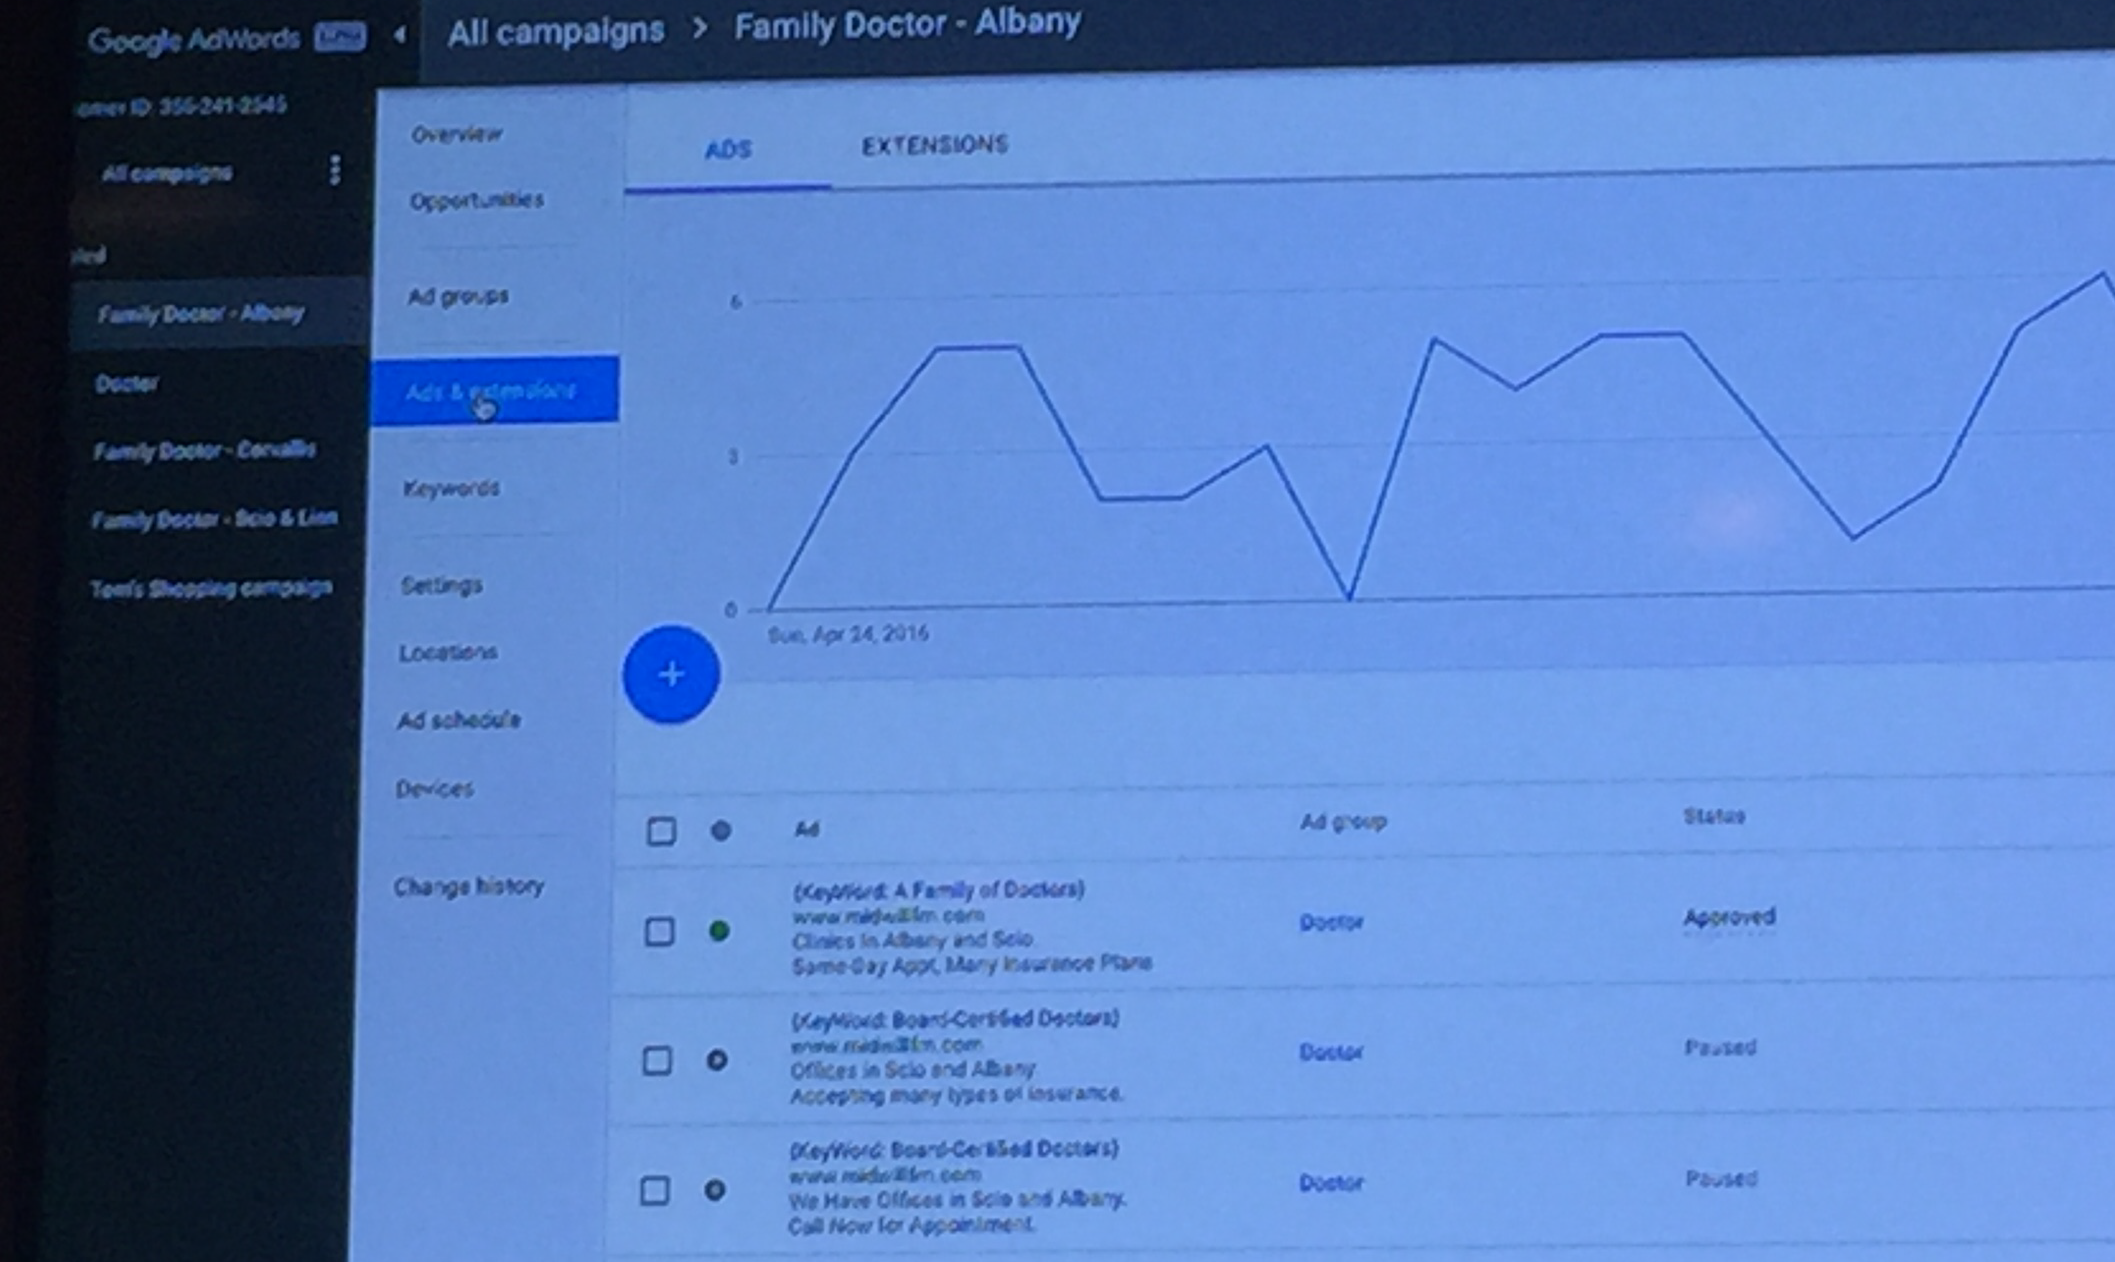 New AdWords interface campaign creation wizard